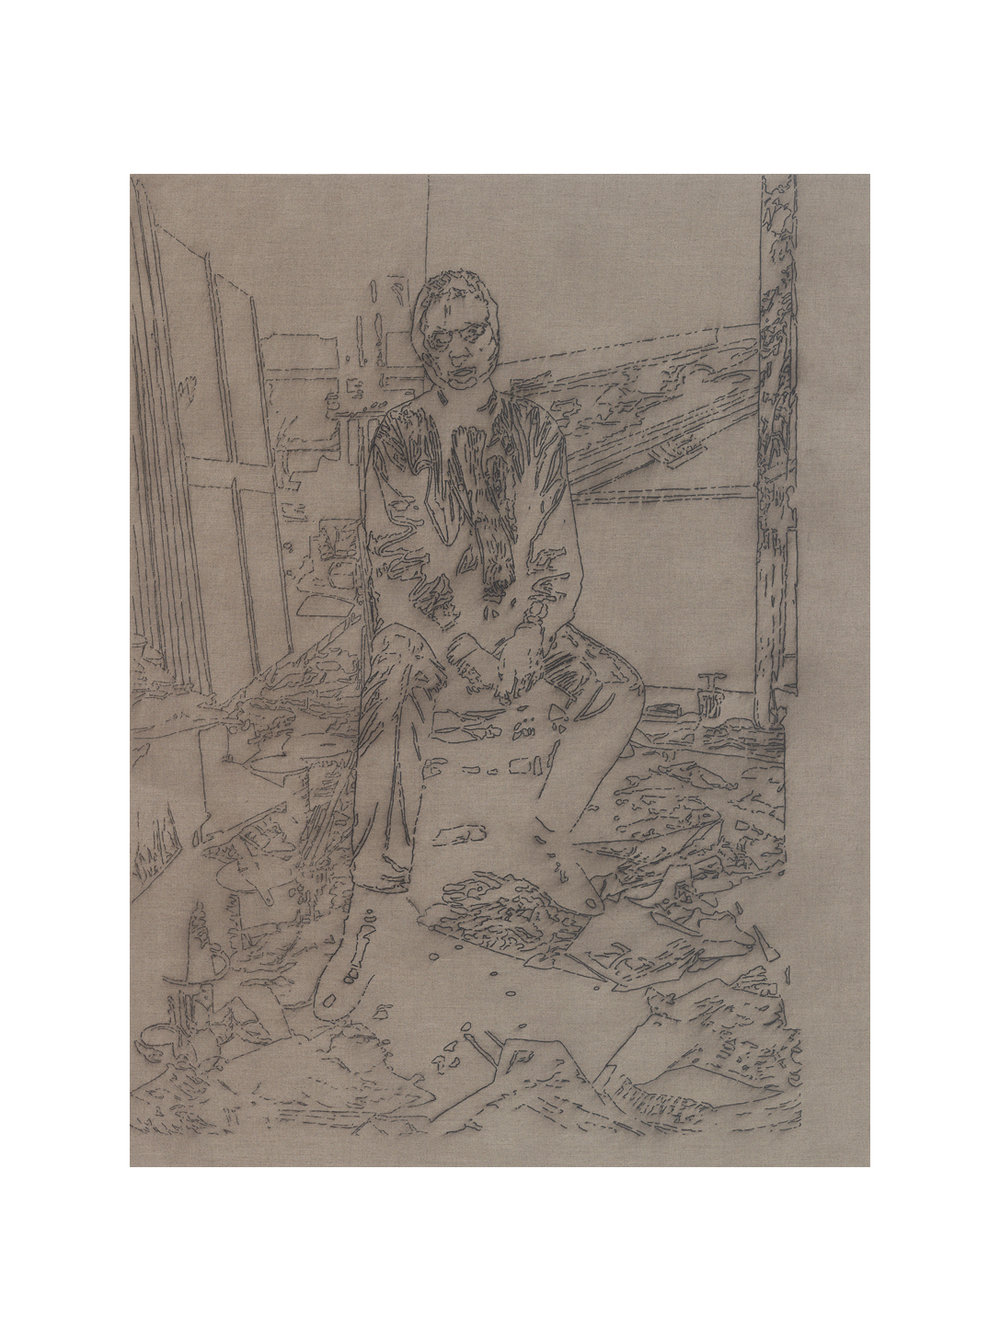 after Bruce Bernard, London, 1984 (Francis Bacon in his studio)   44x33, pigment marker and acrylic on linen, 2010-11